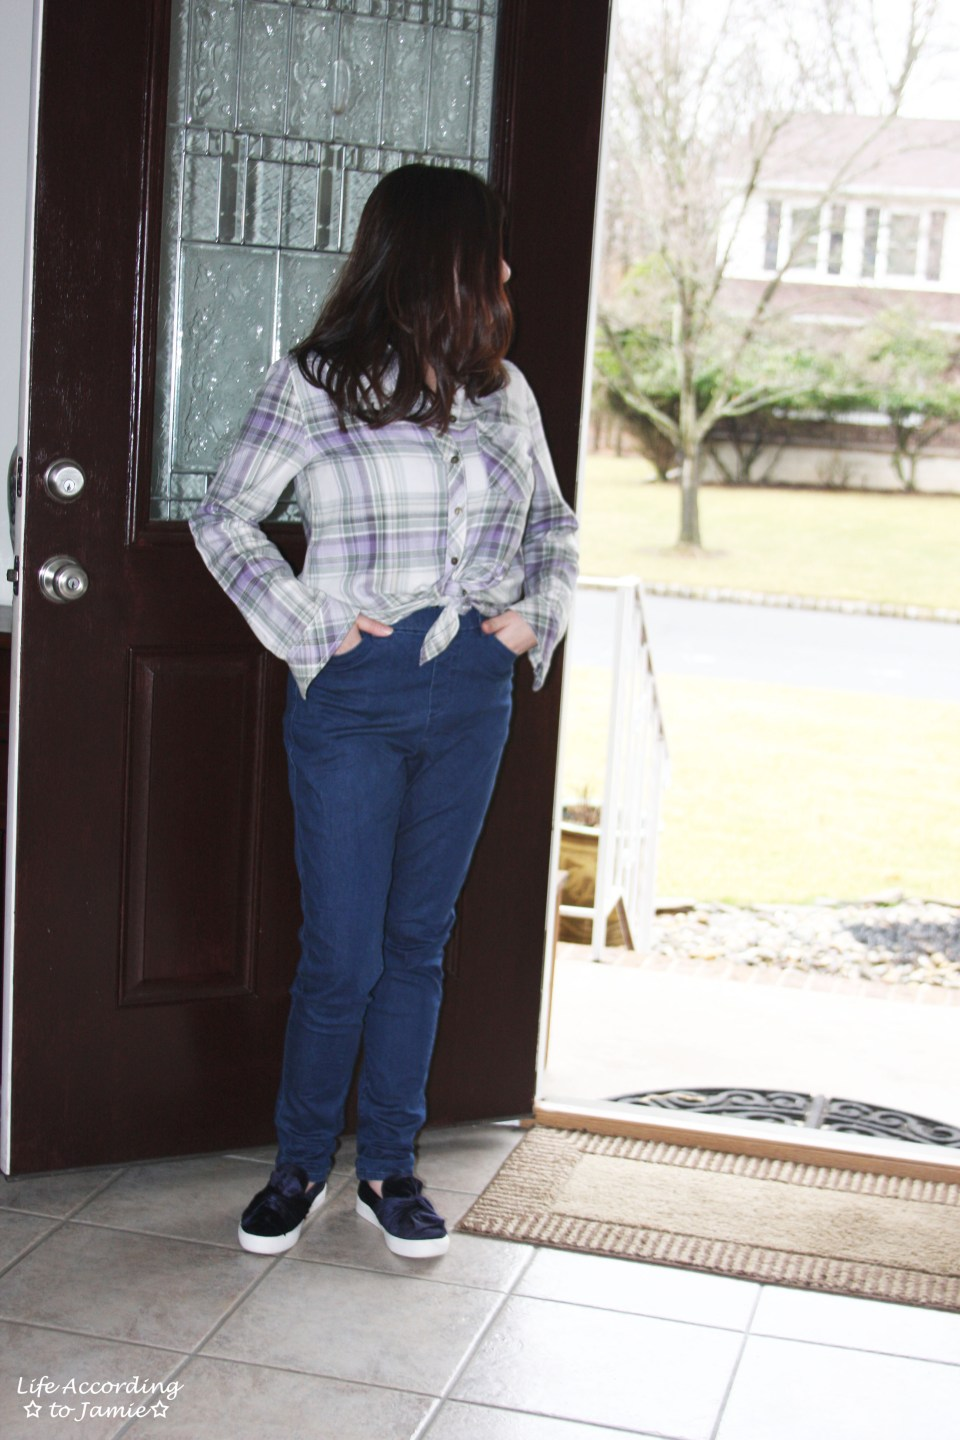 Tied Plaid Top + High Waisted Jeans 8